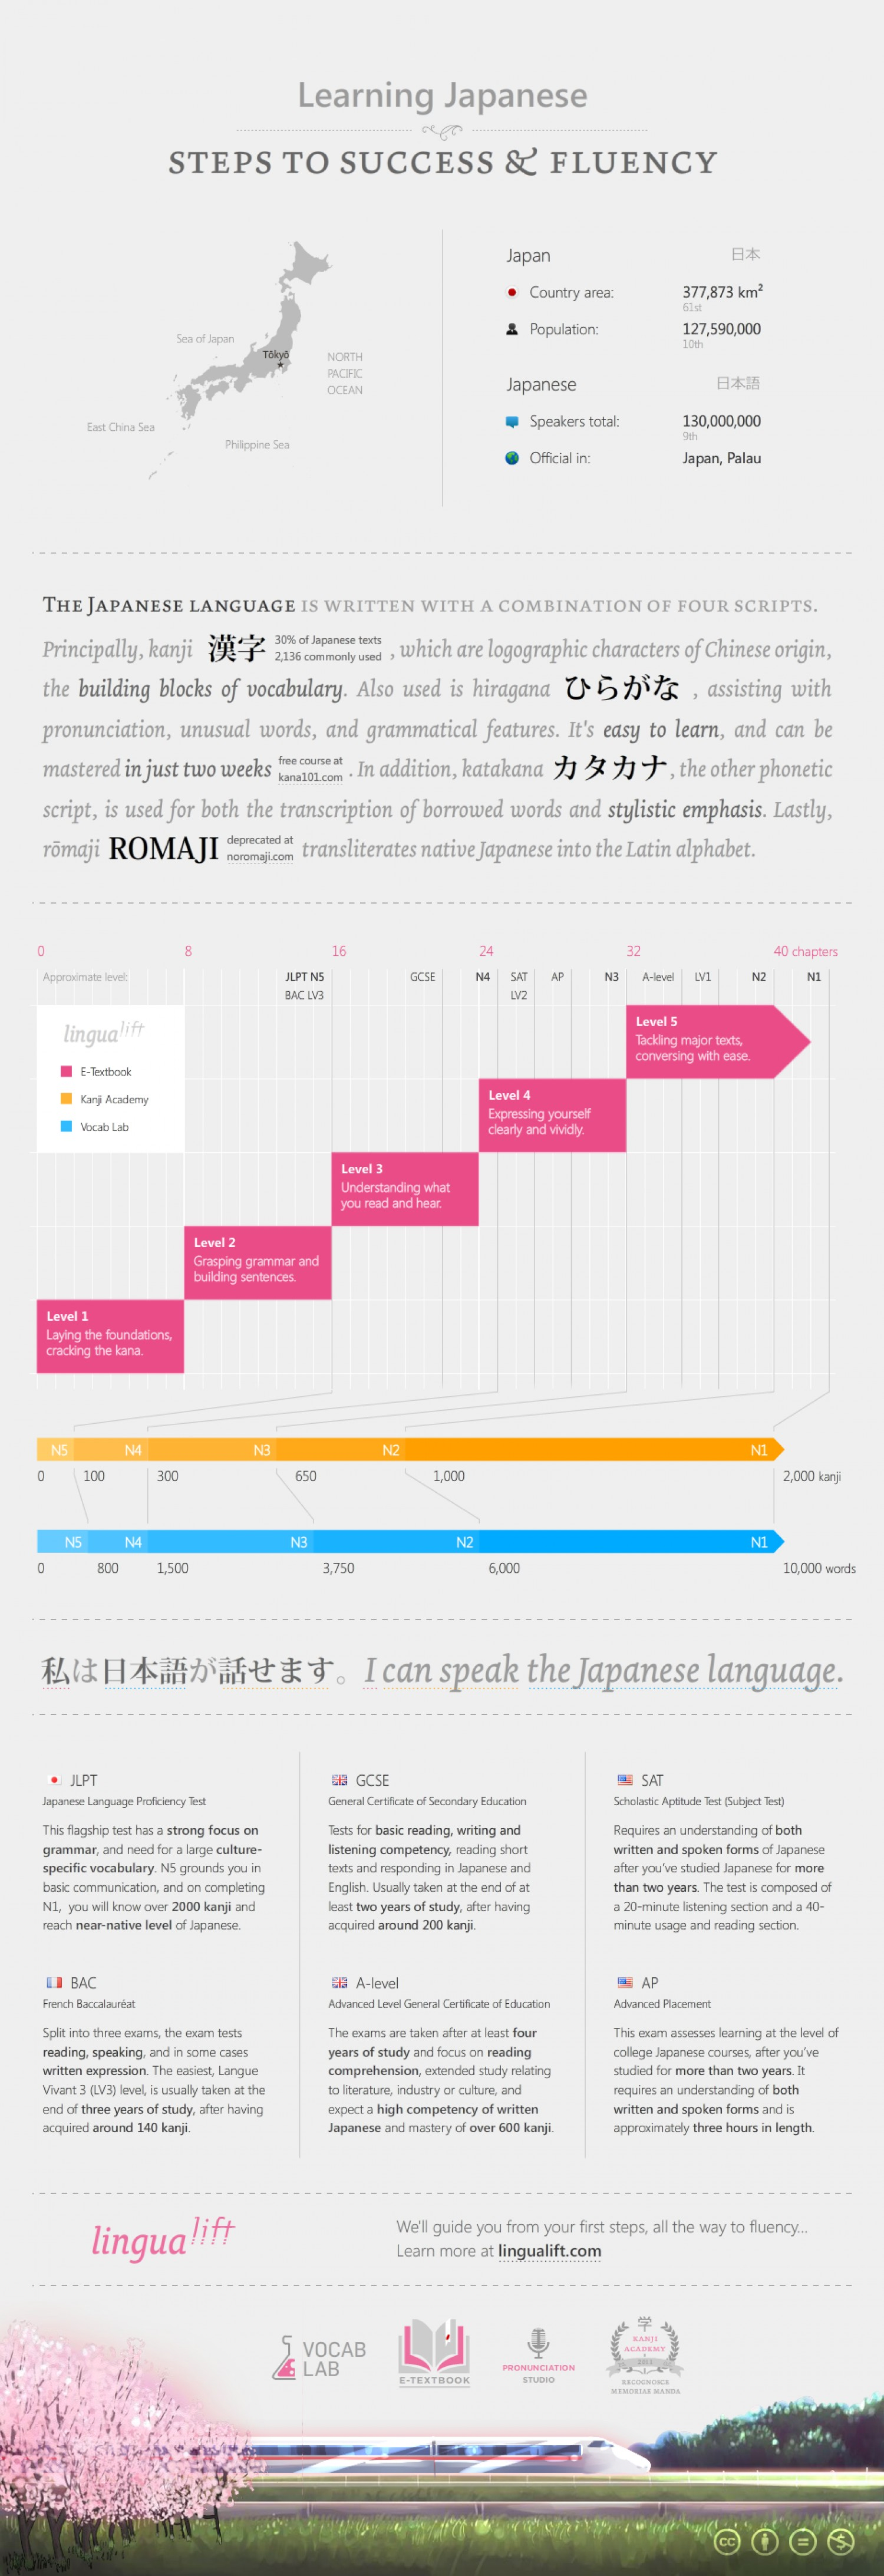 Learning Japanese: Steps to Success & Fluency